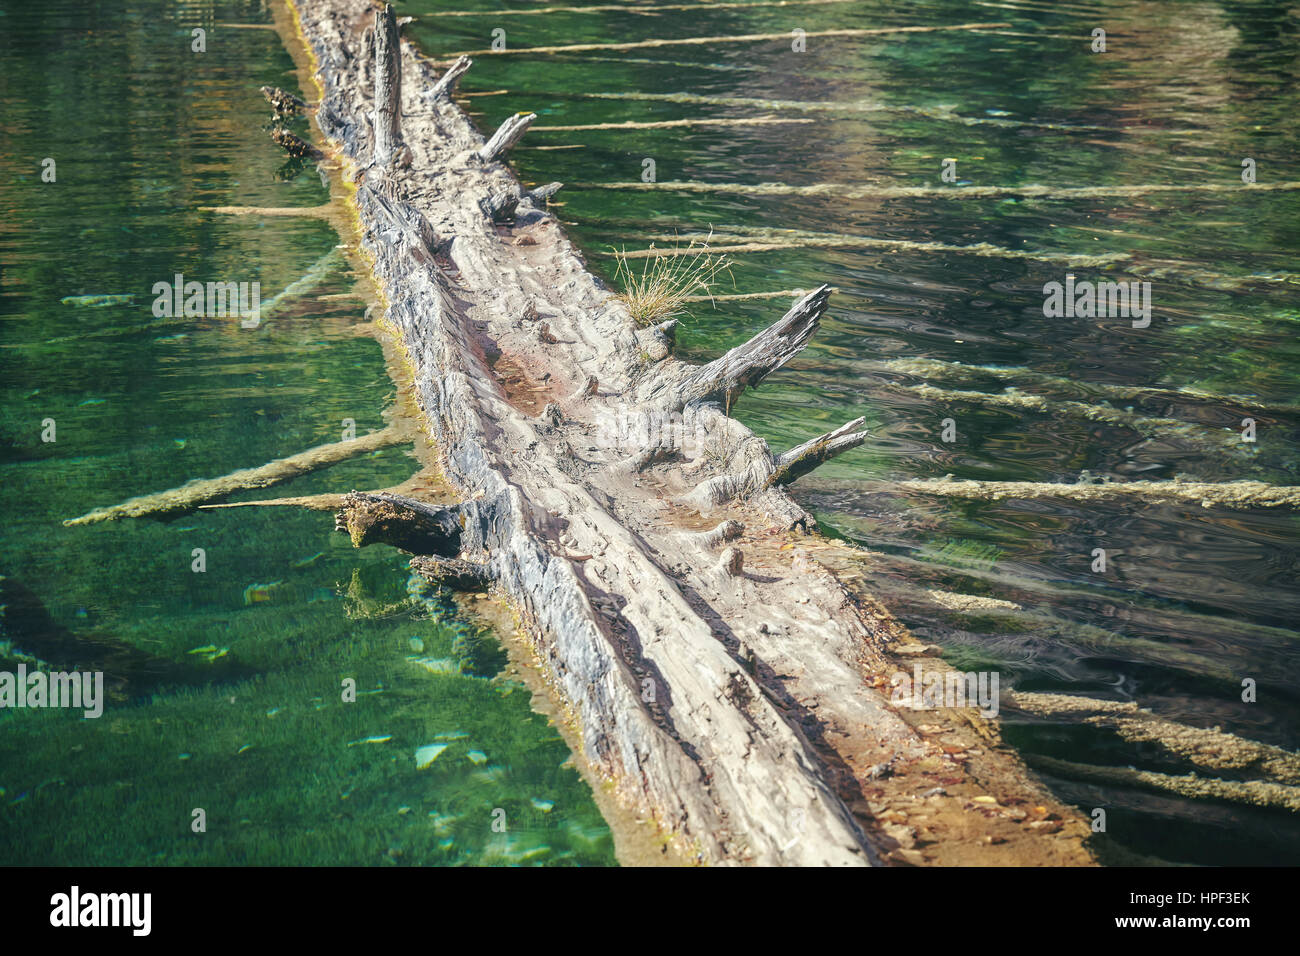 Old floating log, selective focus, color toned image, abstract natural background. Stock Photo